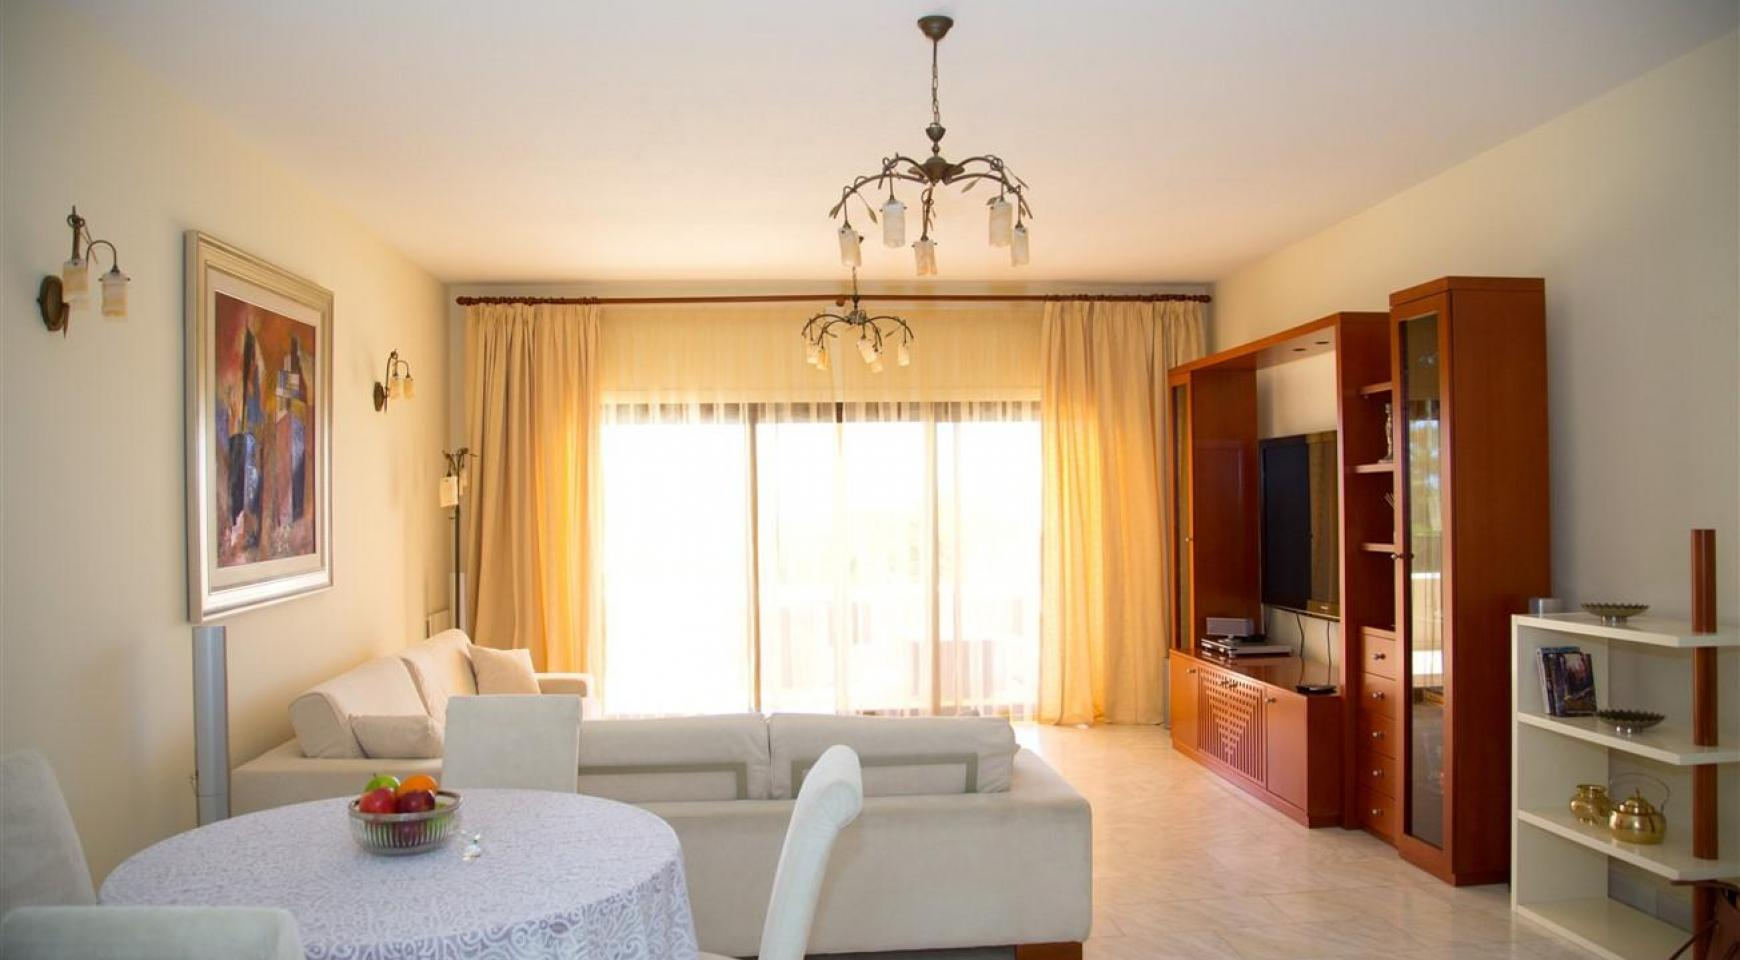 3 Bedroom Apartment in a Gated Complex by the Sea - 27